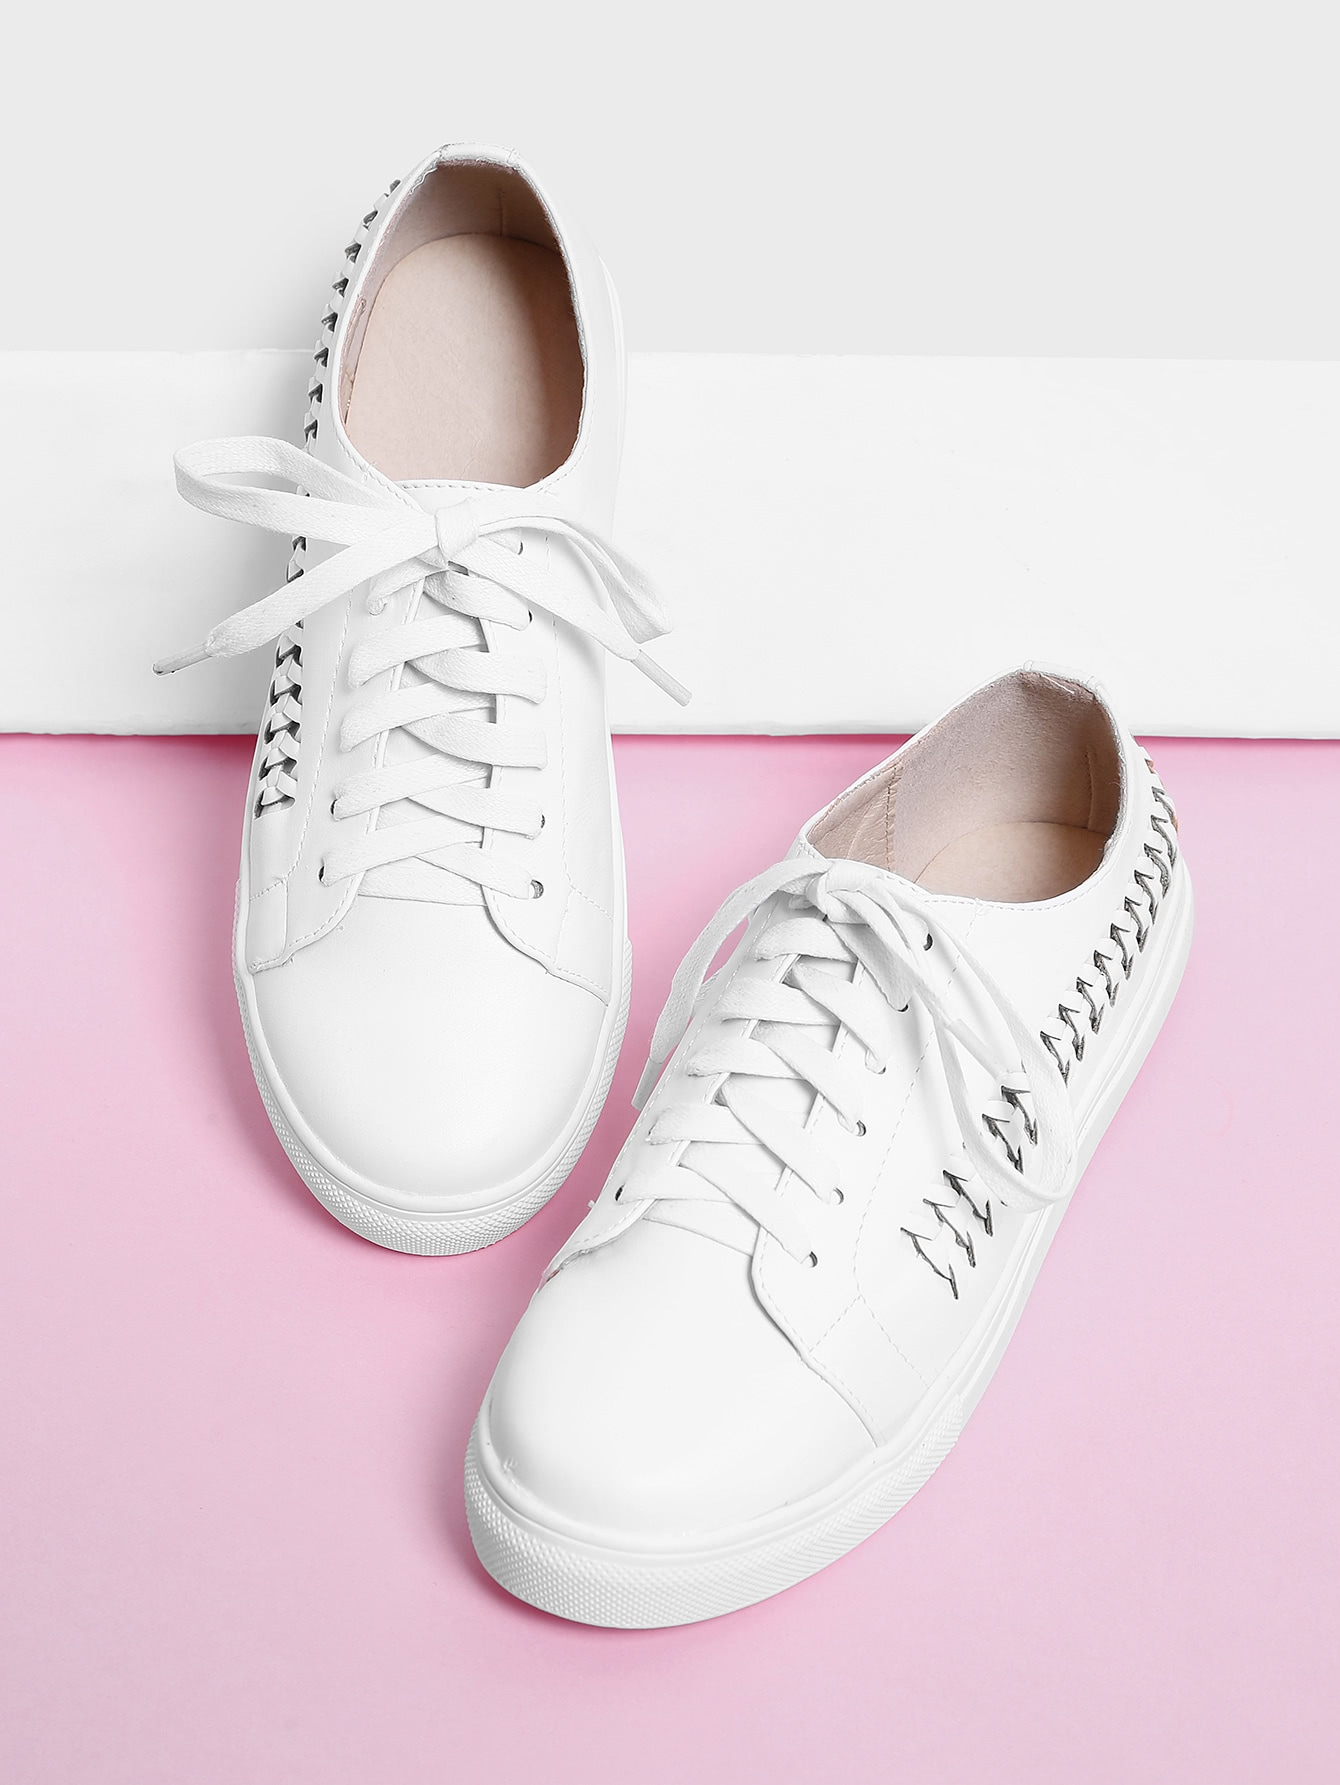 Woven Detail Lace Up Trainers woven detail lace up trainers